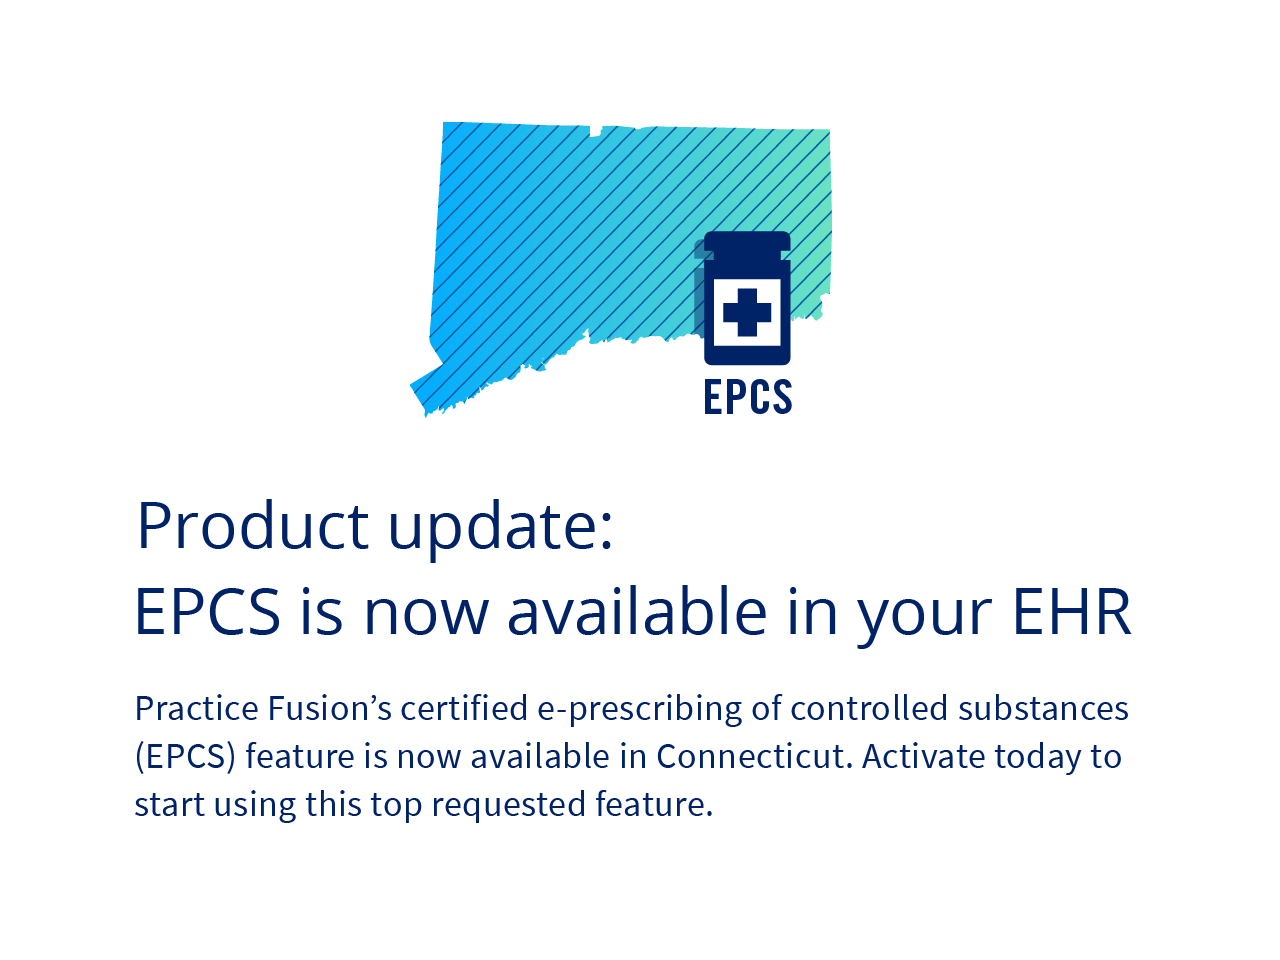 Product update: EPCS is now available in your EHR